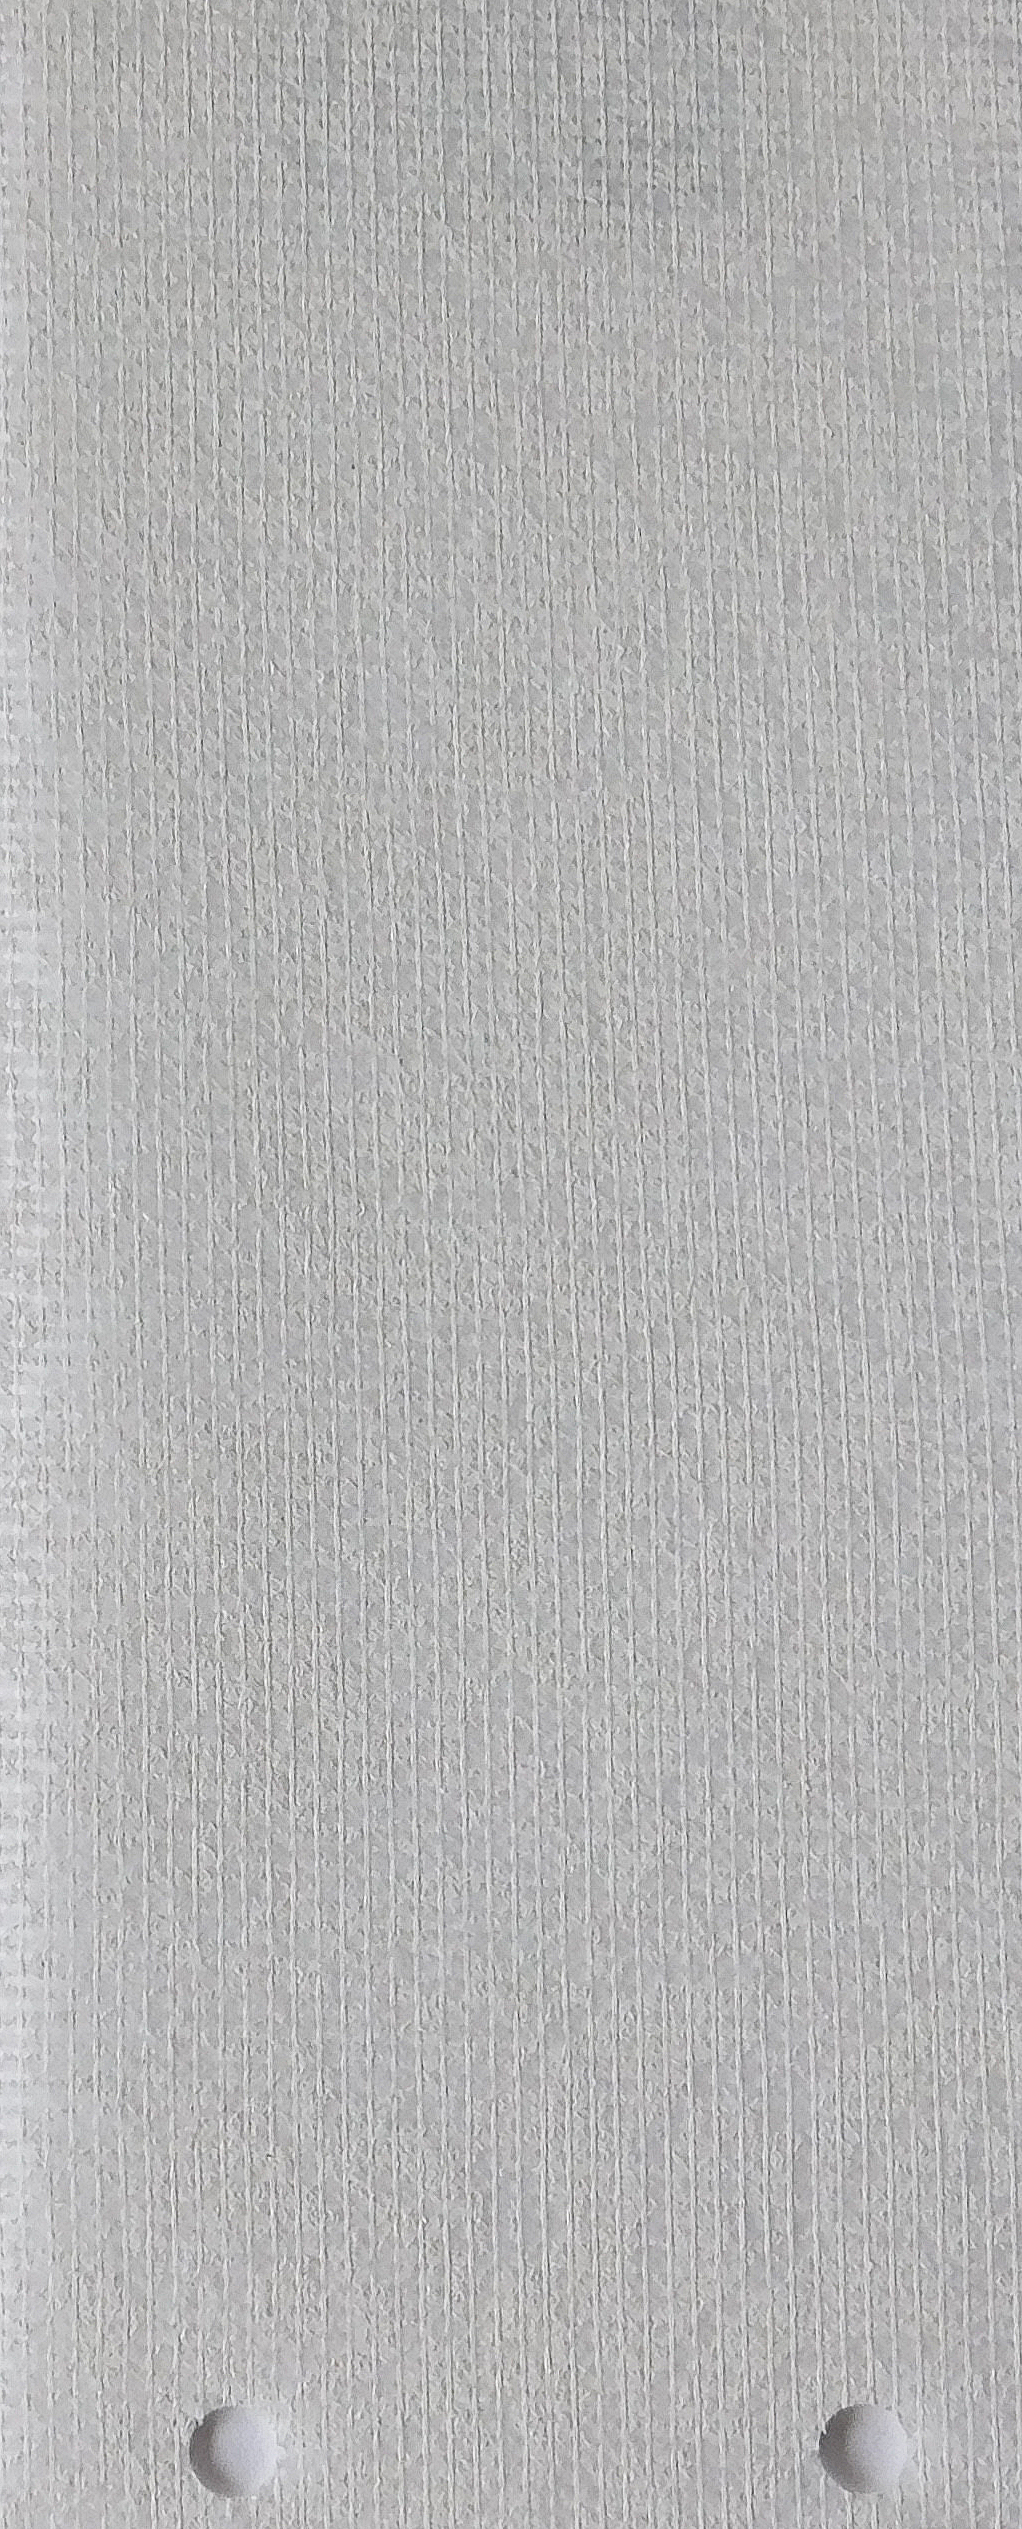 Buy Chantilly Lace Cream Vertical Blinds Online Merit